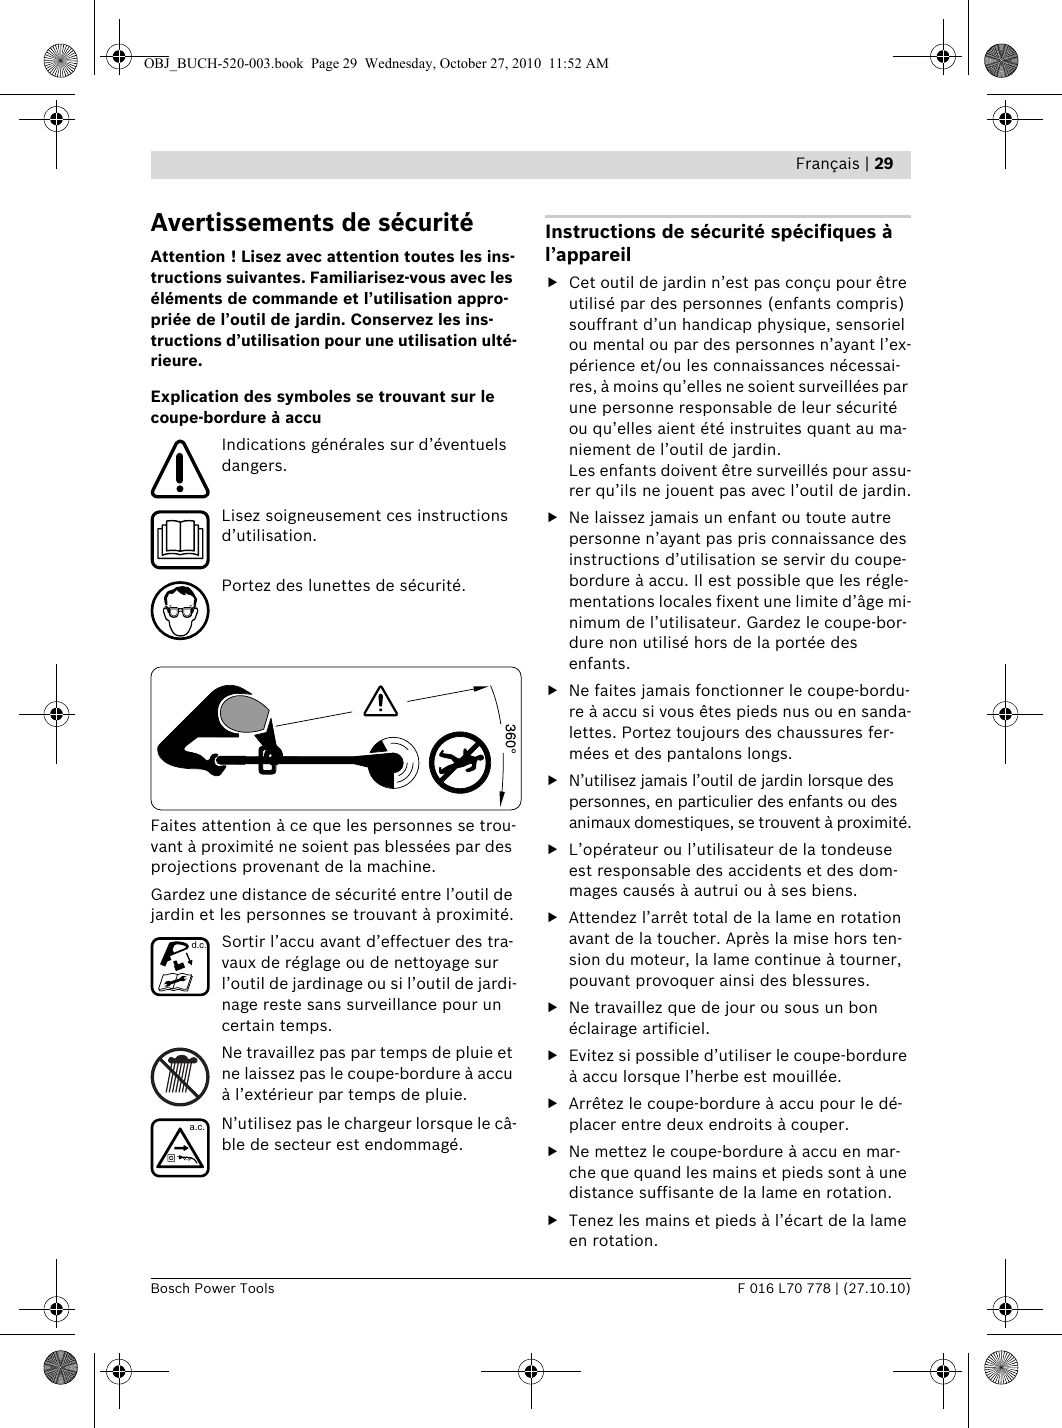 Art26LiManual User Guide Page 29